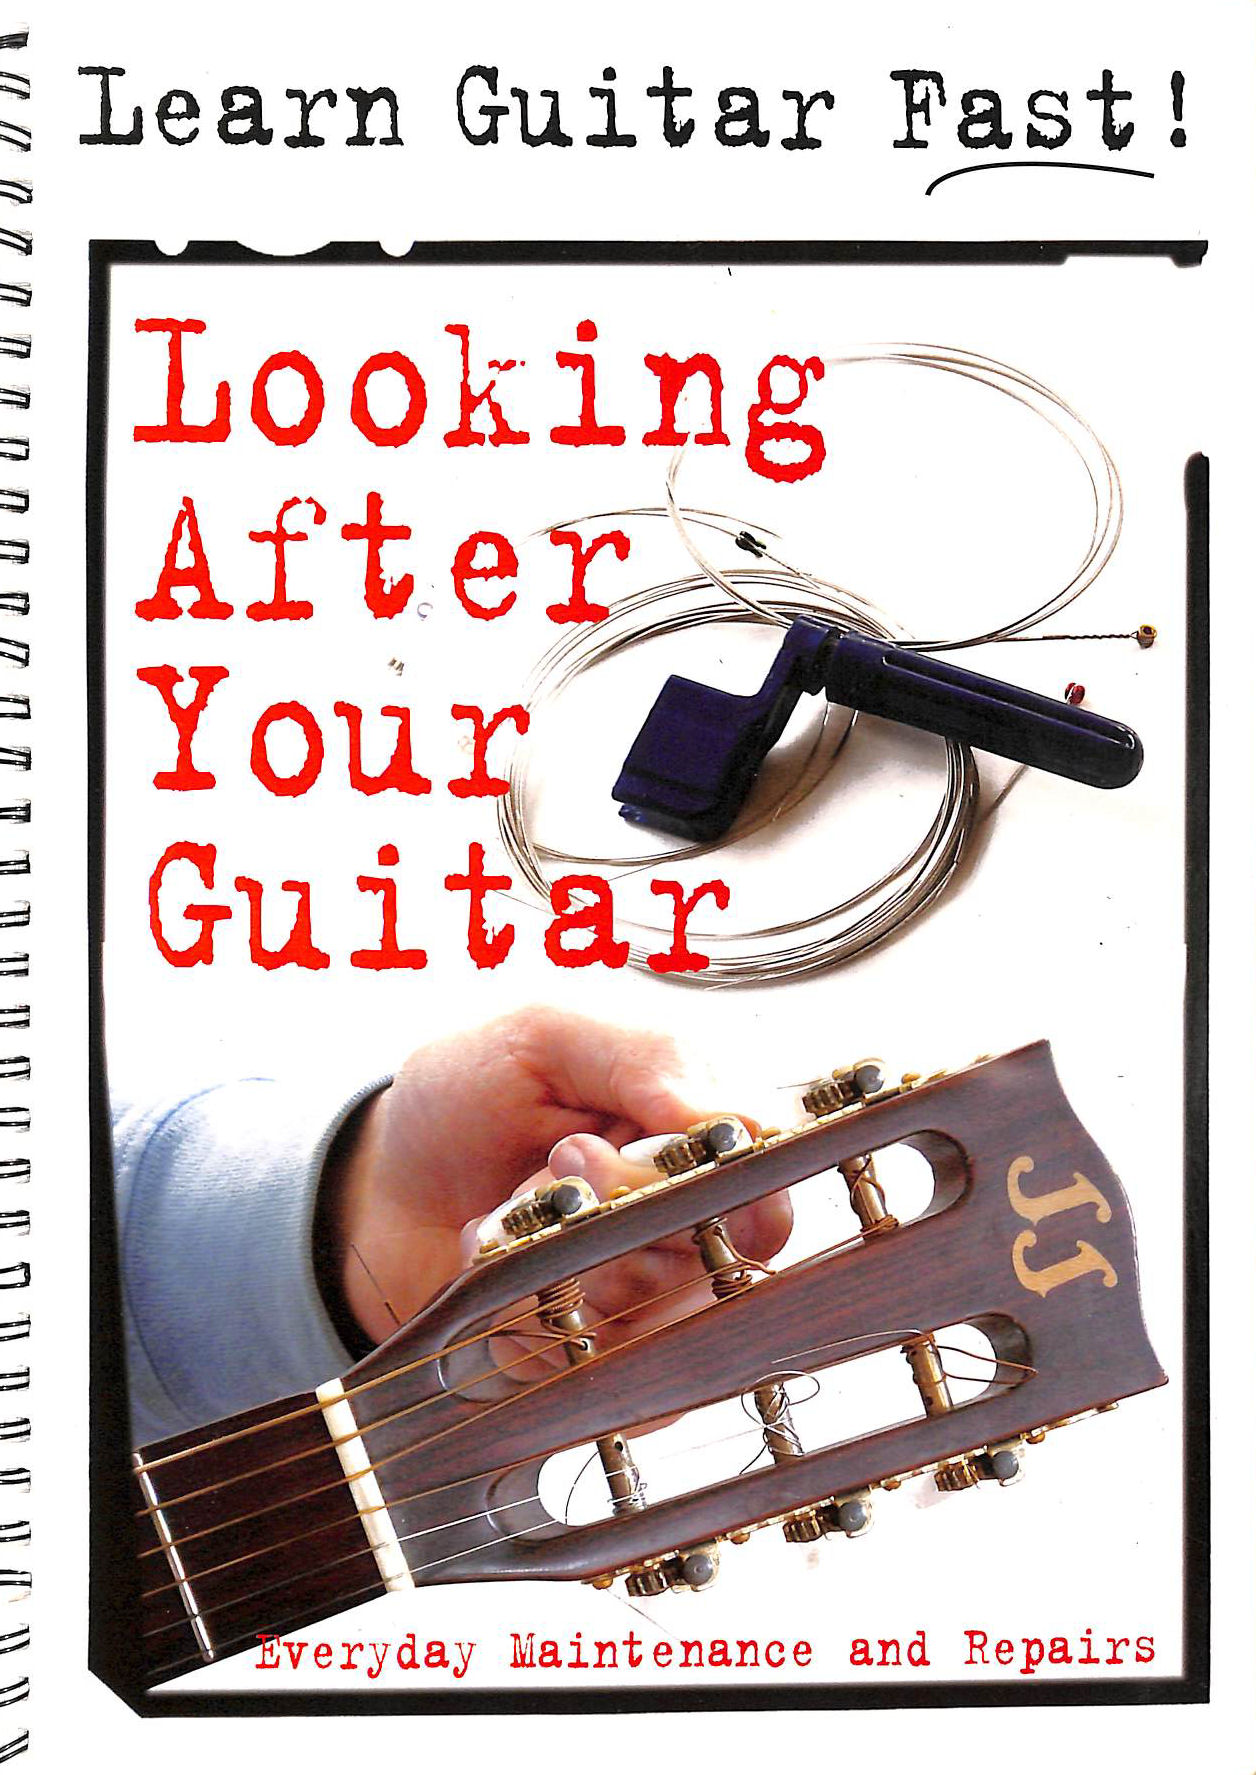 Image for Looking After Your Guitar: Everyday Maintenance and Repairs (Learn Guitar Fast)